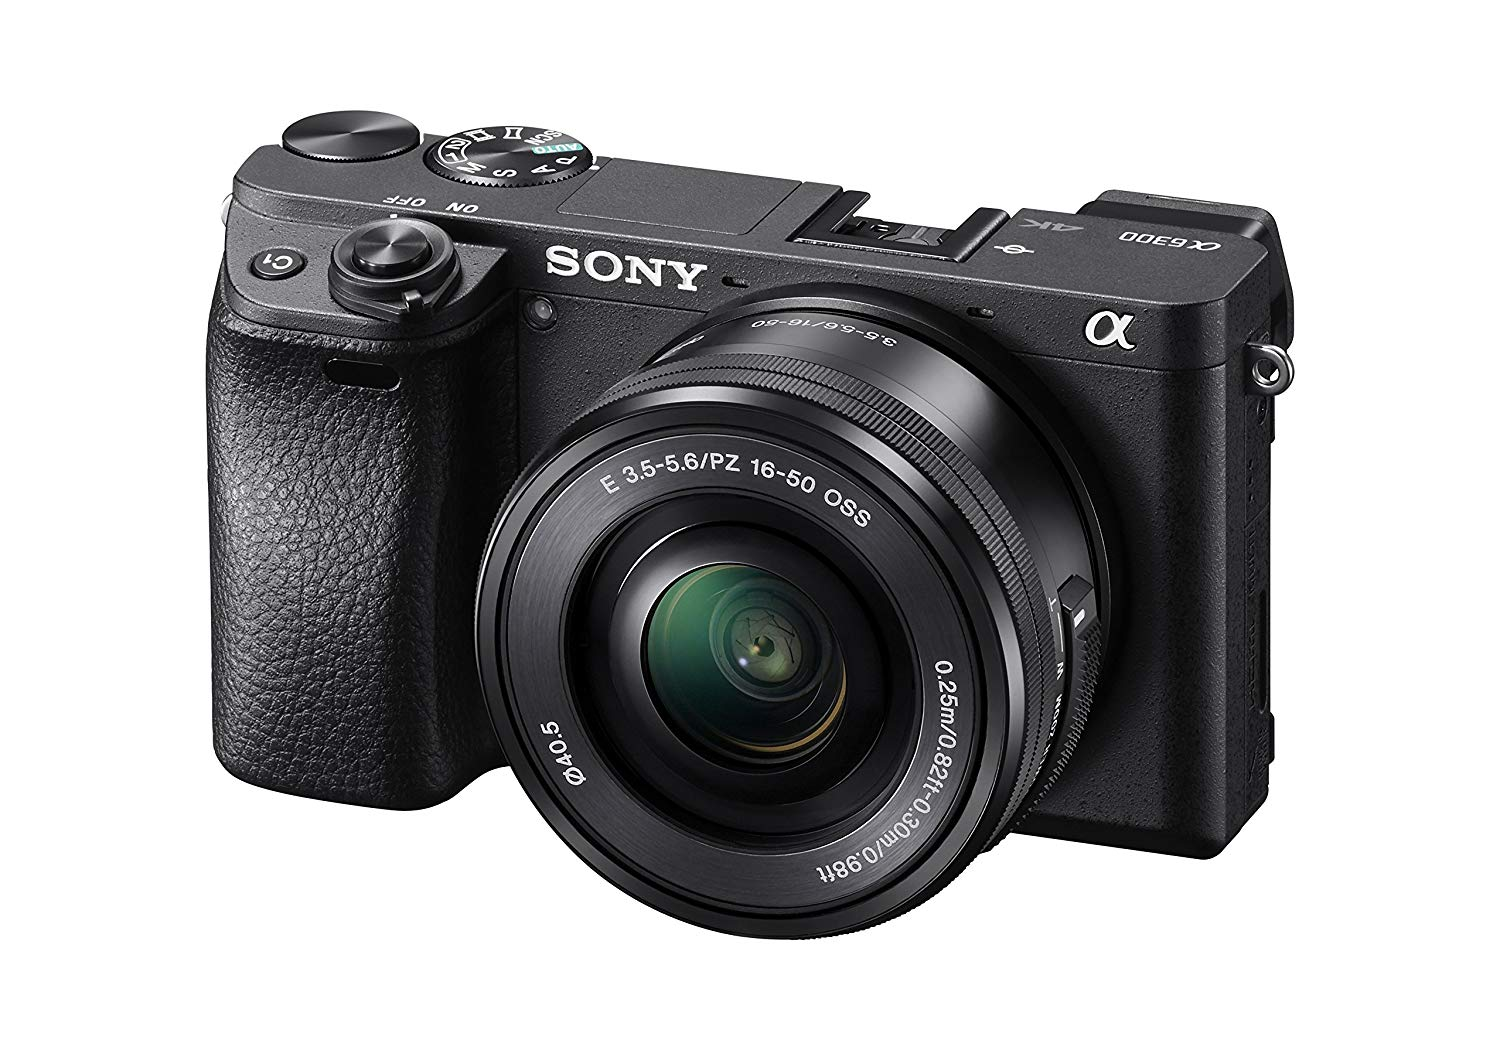 Sony Alpha a6300 Mirrorless Digital Camera with 16-50mm Lens (Black)